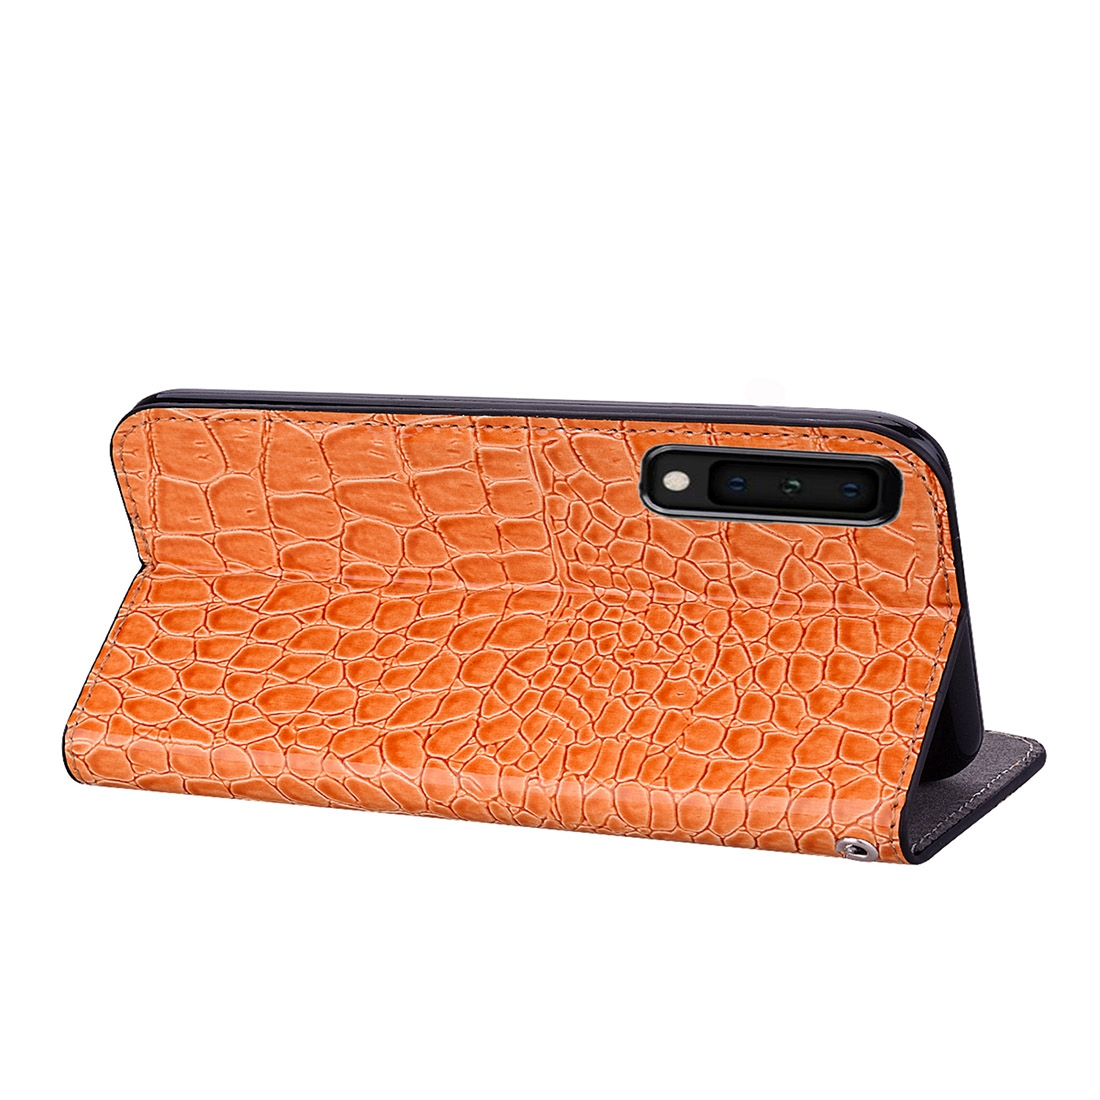 Crocodile Texture Glitter Powder Horizontal Flip Leather Case for Galaxy A7 (2018), with Card Slots & Holder (Orange)